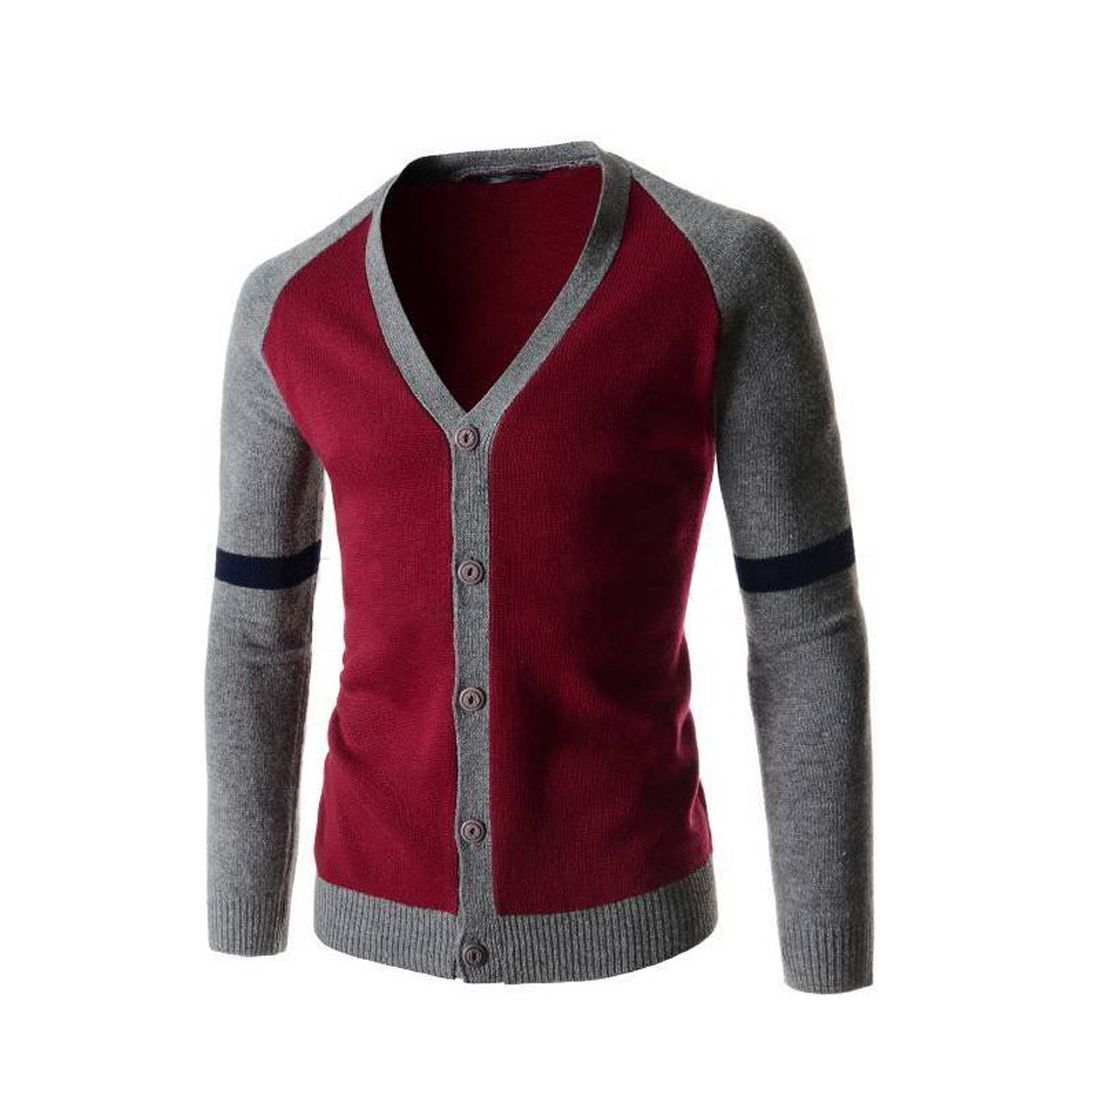 2017 New Spring Men Cardigan Long Sleeve Tops Sweater Thin Knitted ...